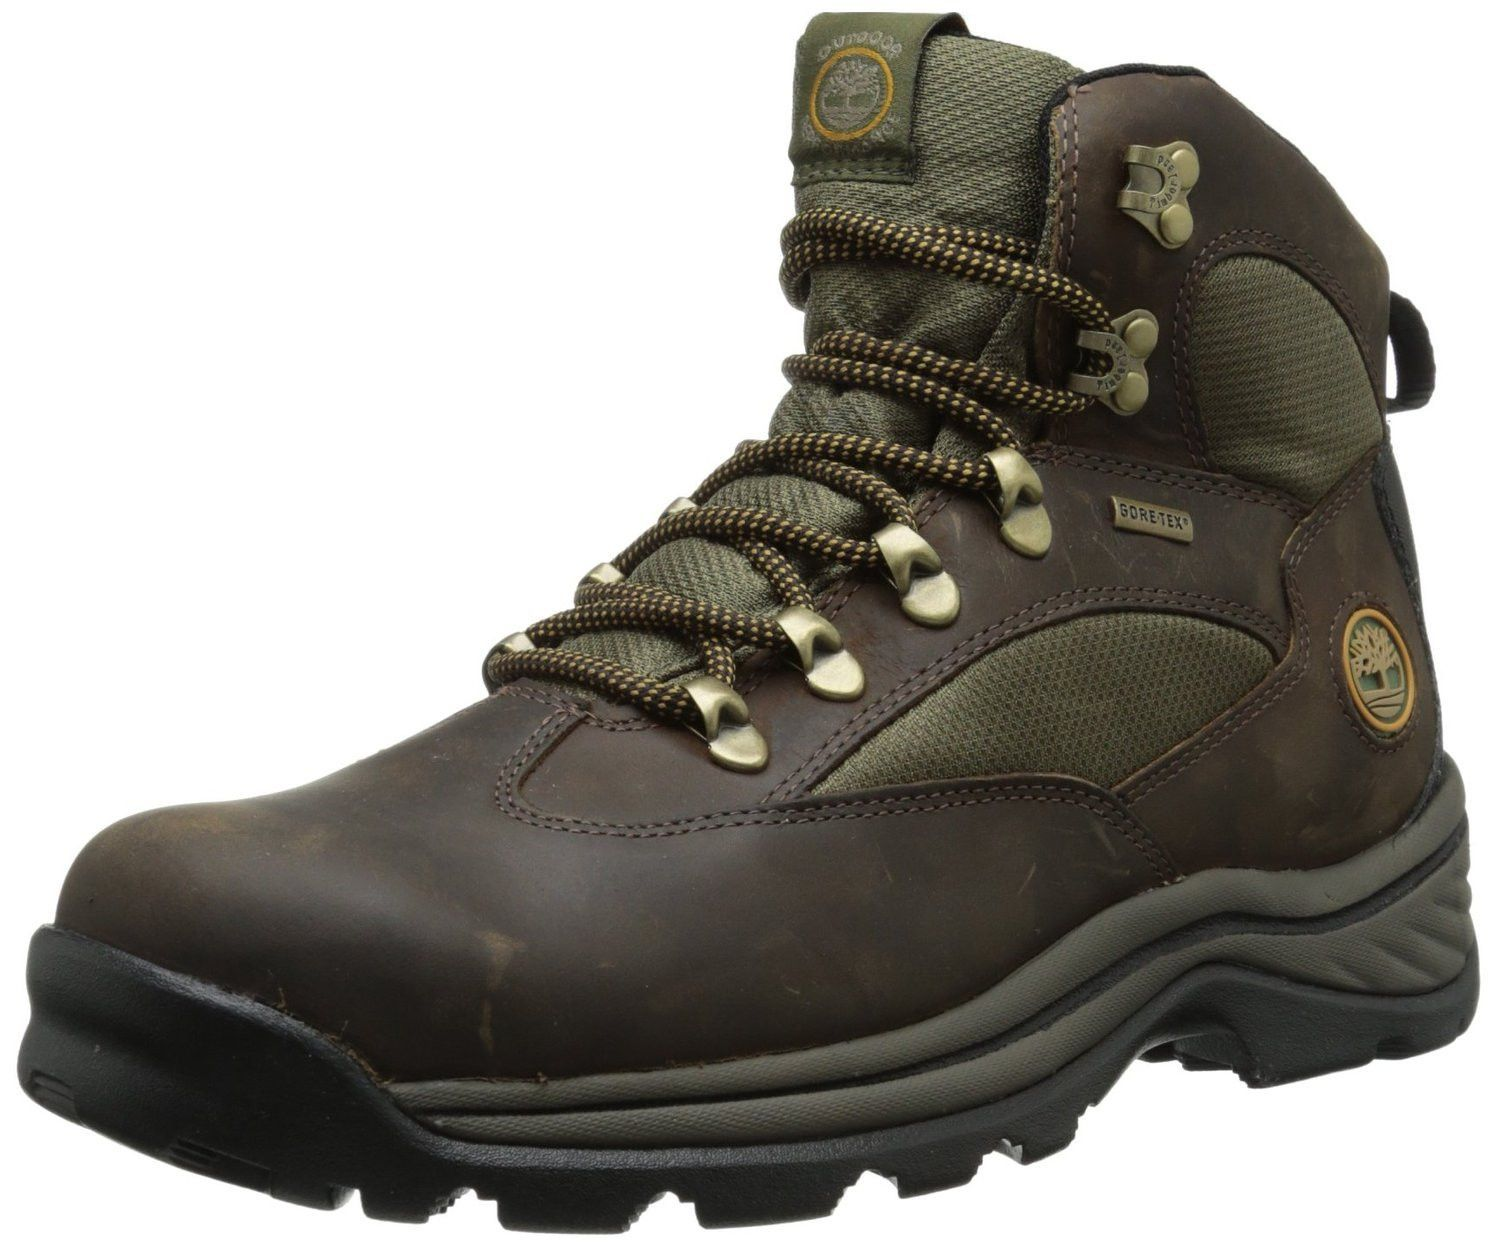 Store Sale Cheap And Nice Chocorua Trail 2 Leather And Gore-tex Hiking Boots Timberland New Arrival Fashion With Credit Card Cheap Price Release Dates Authentic sqAvah